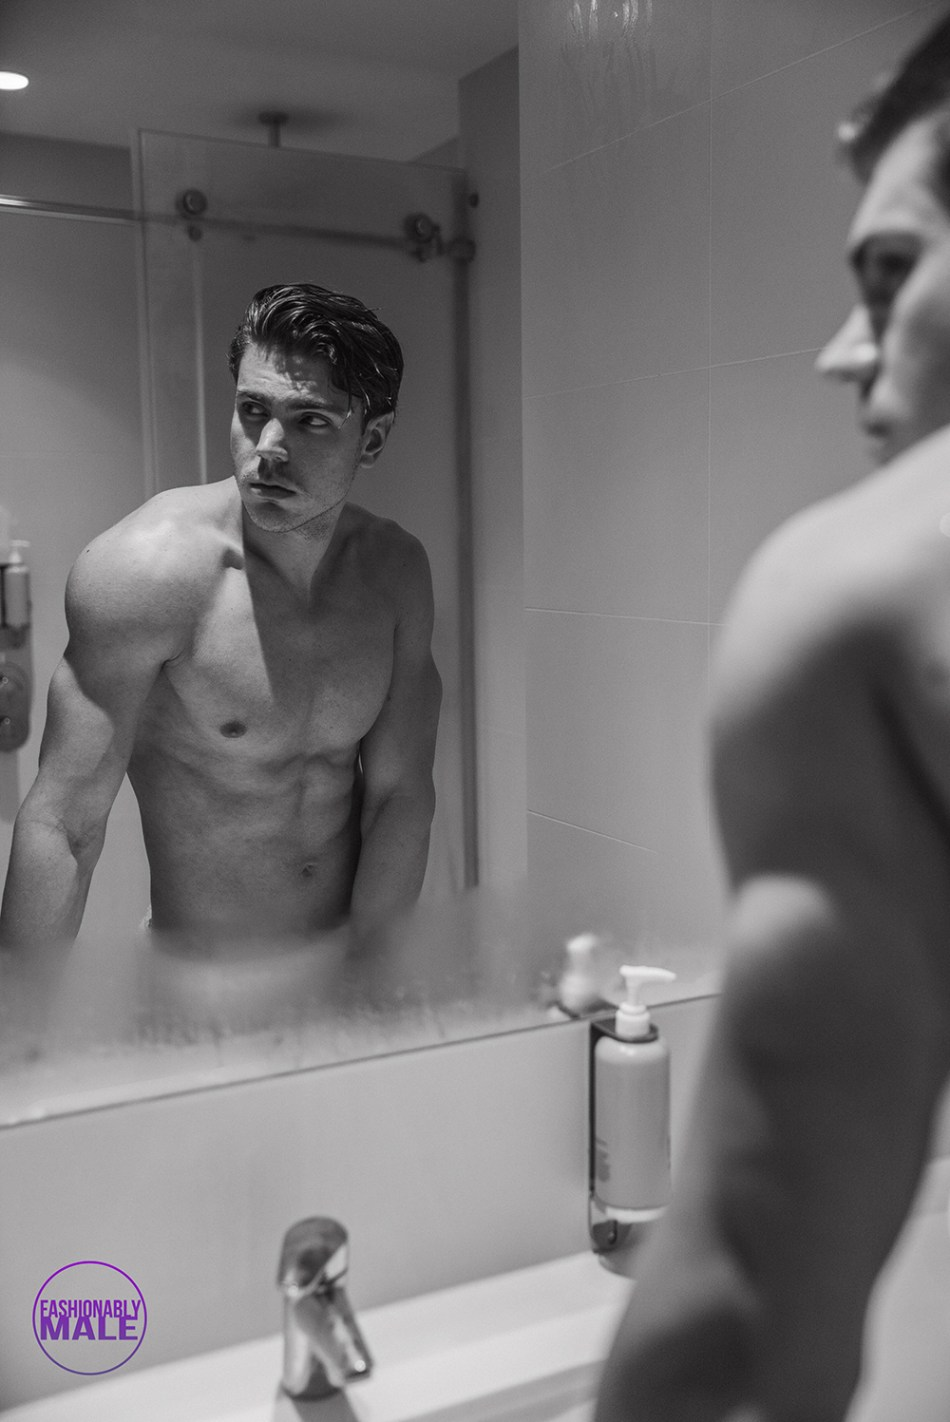 Hot Tingz: Nino Ceperkovic by Alj Sanchez in Dubai